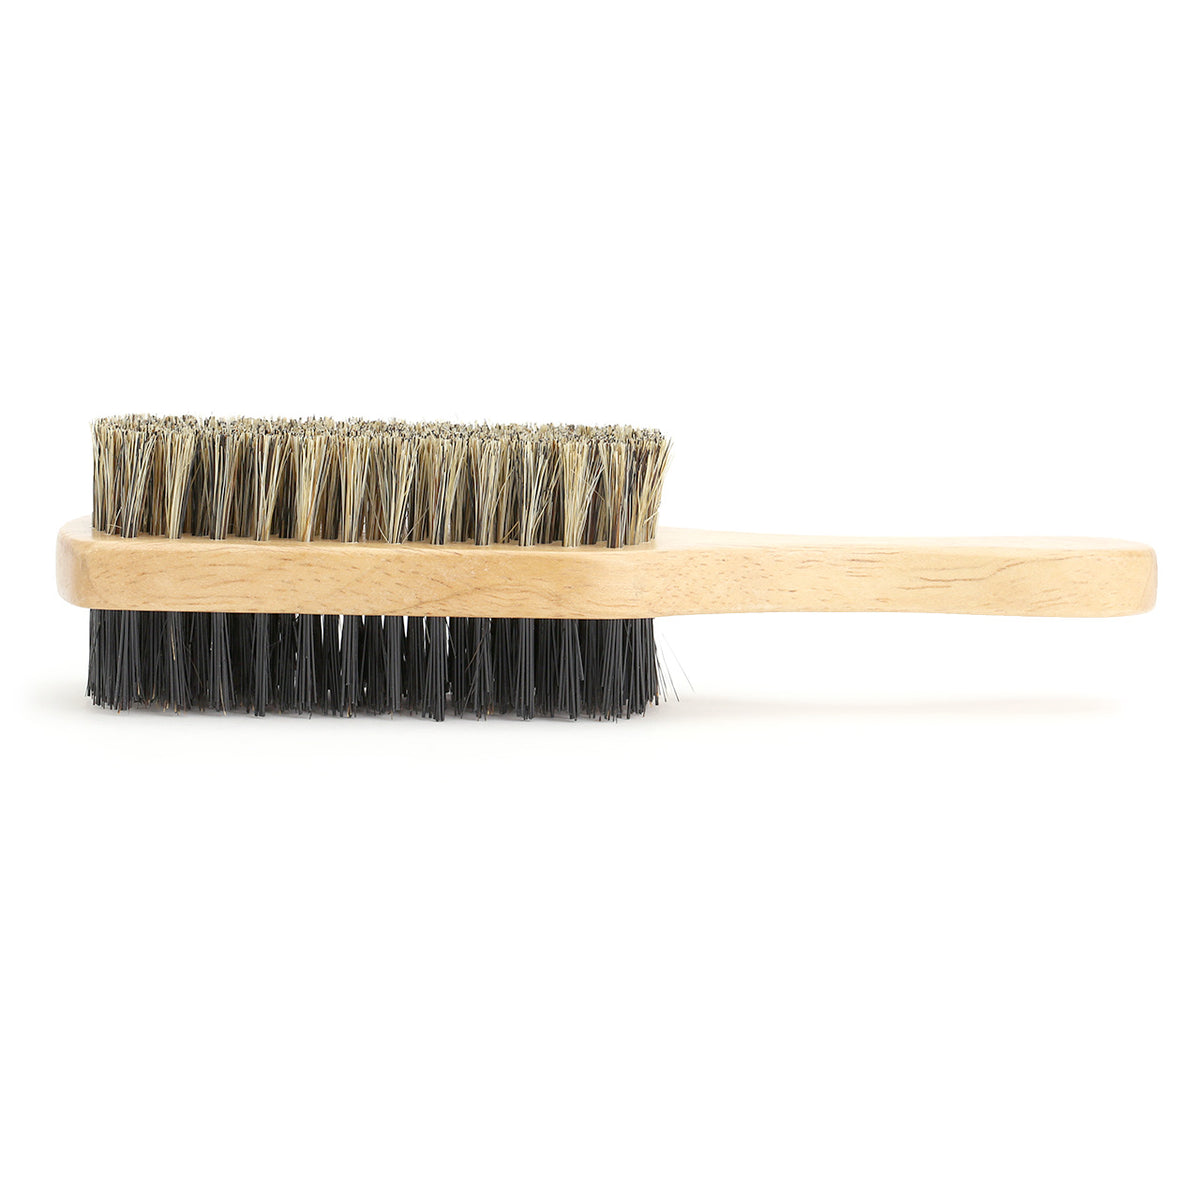 Beard Brush, two sided with wooden paddle handle - side view